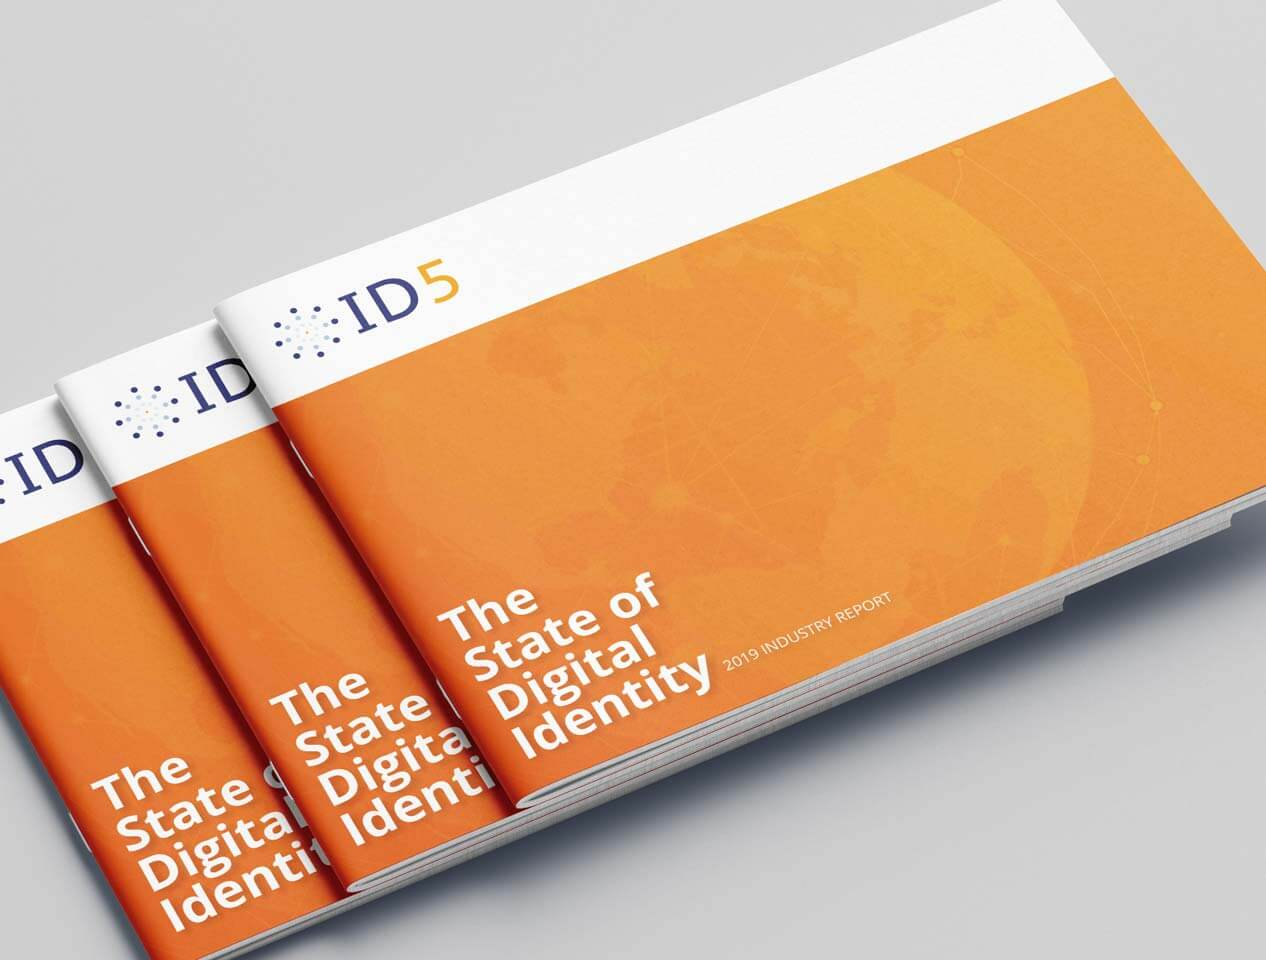 Image showing the cover design of the ID5 industry report